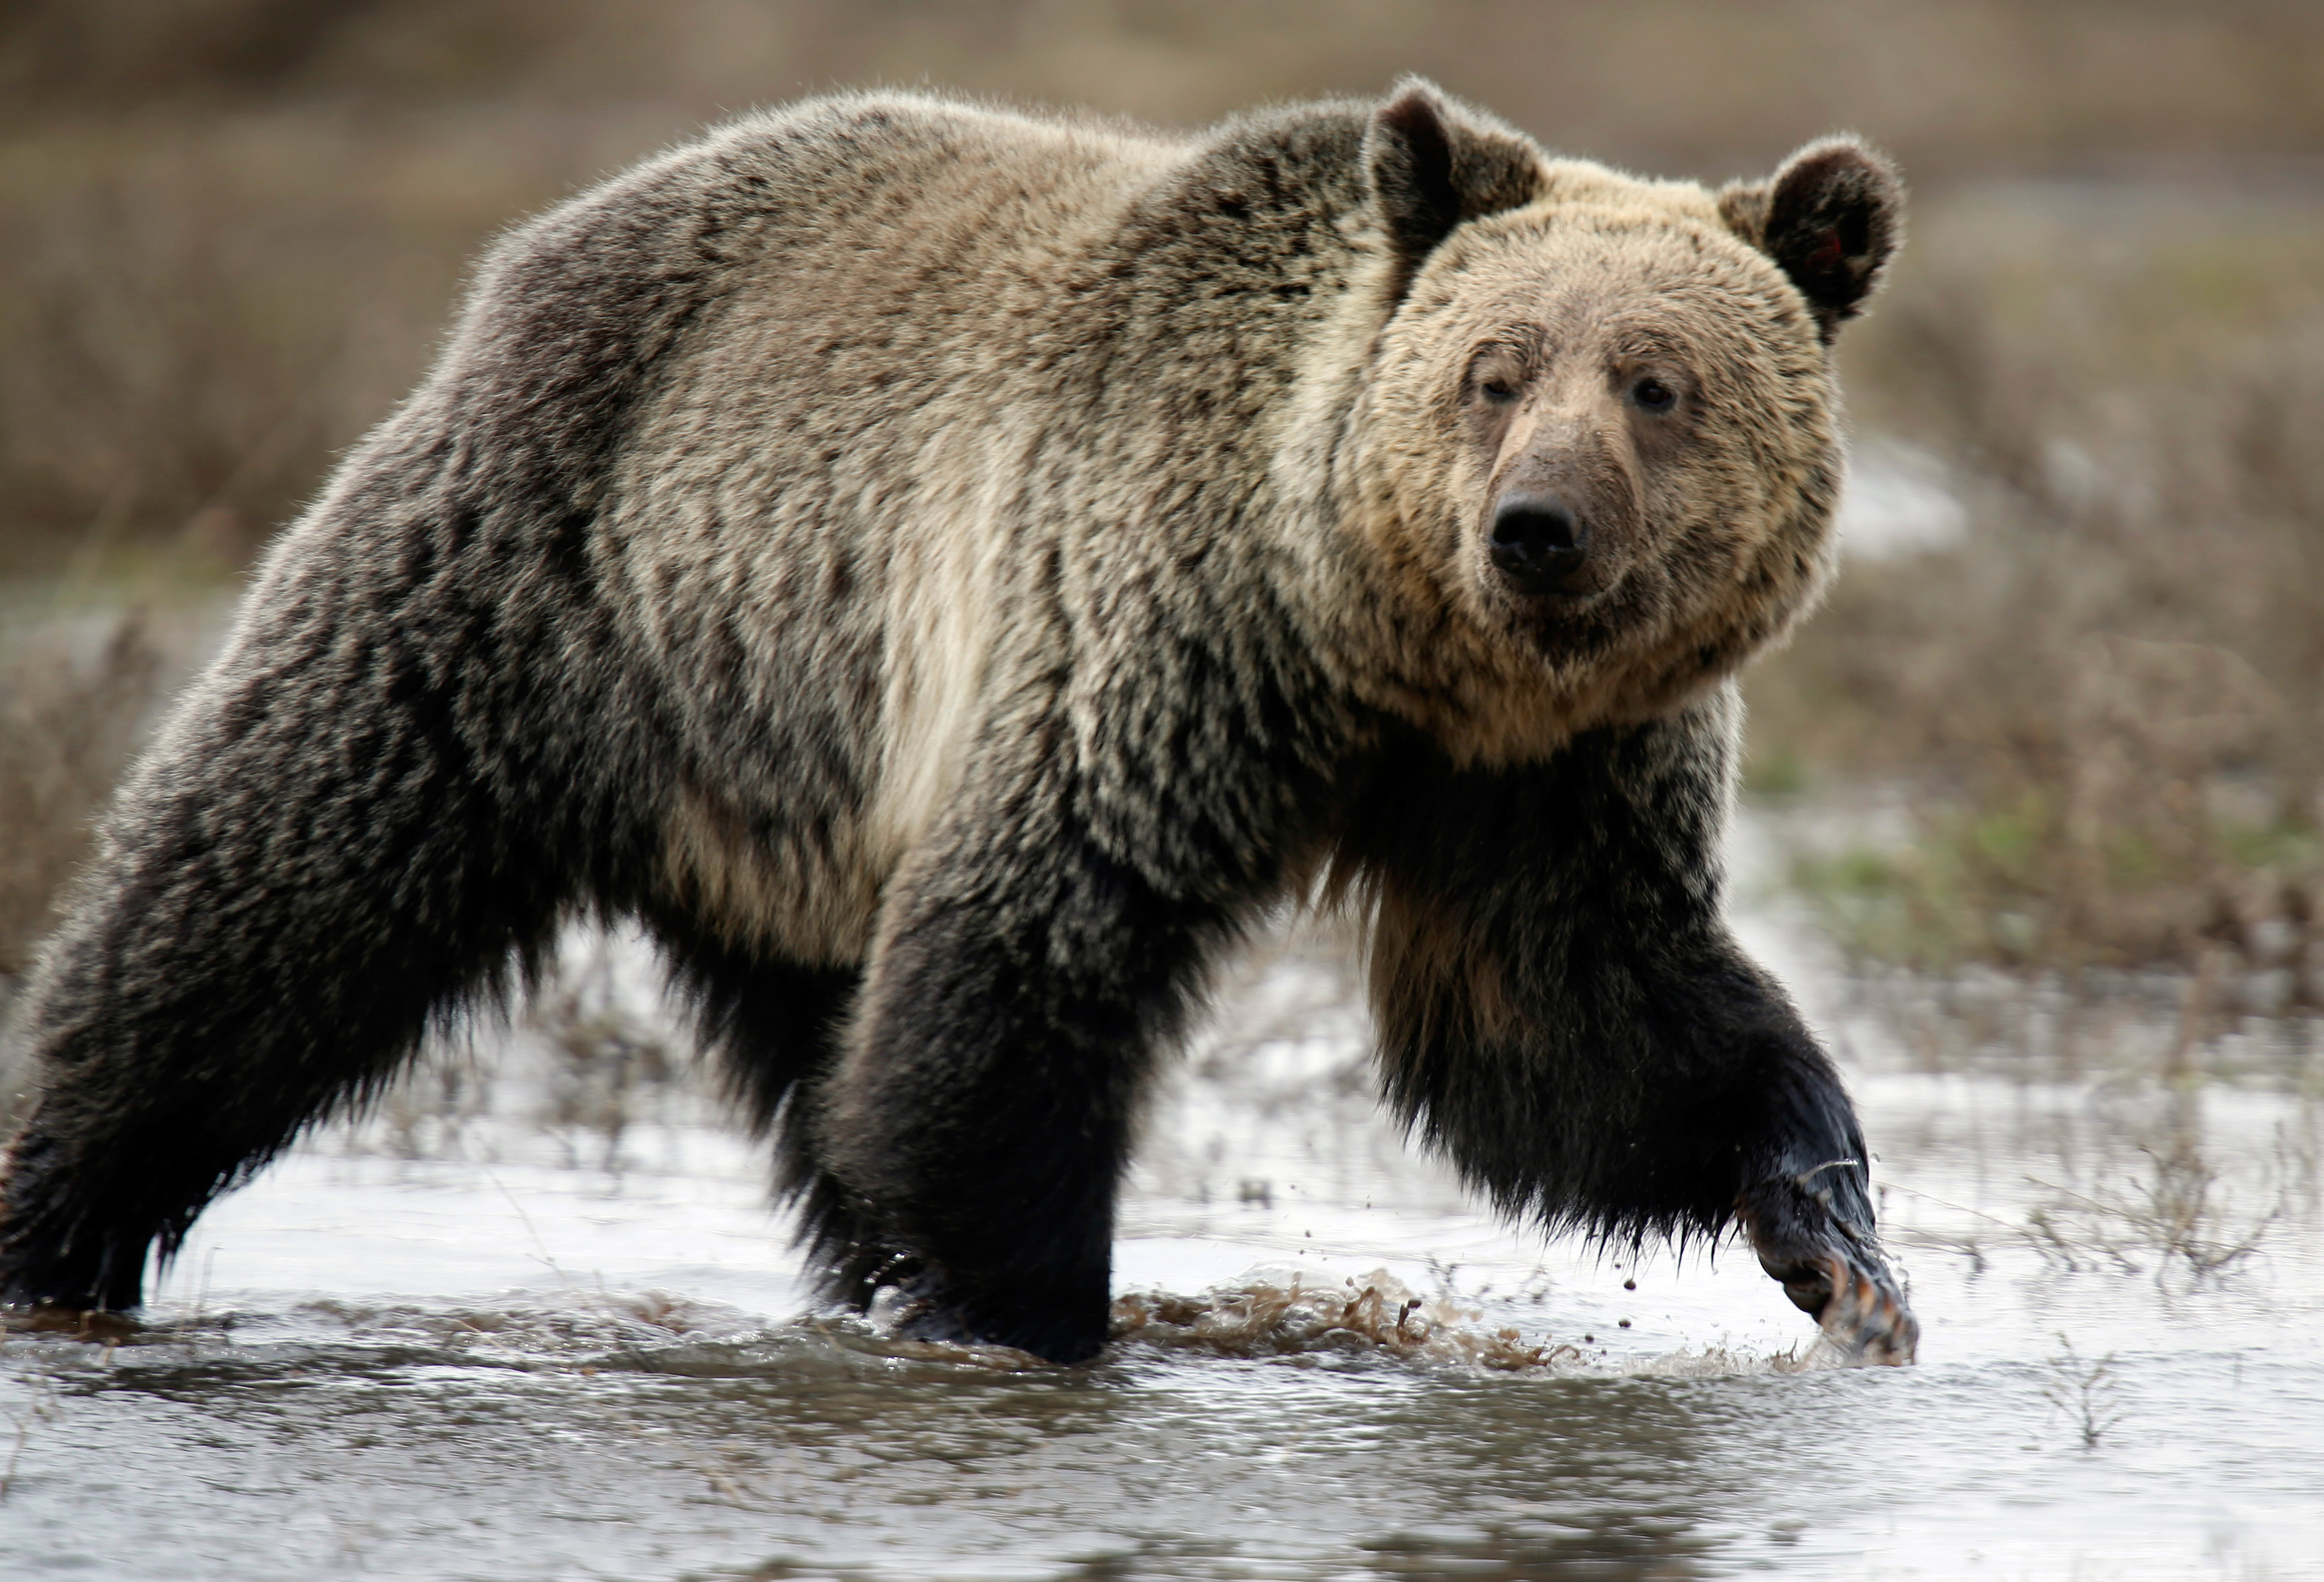 A grizzly bear roams through the Hayden Valley in Yellowstone National Park. May 18, 2014.  REUTERS/Jim Urquhart